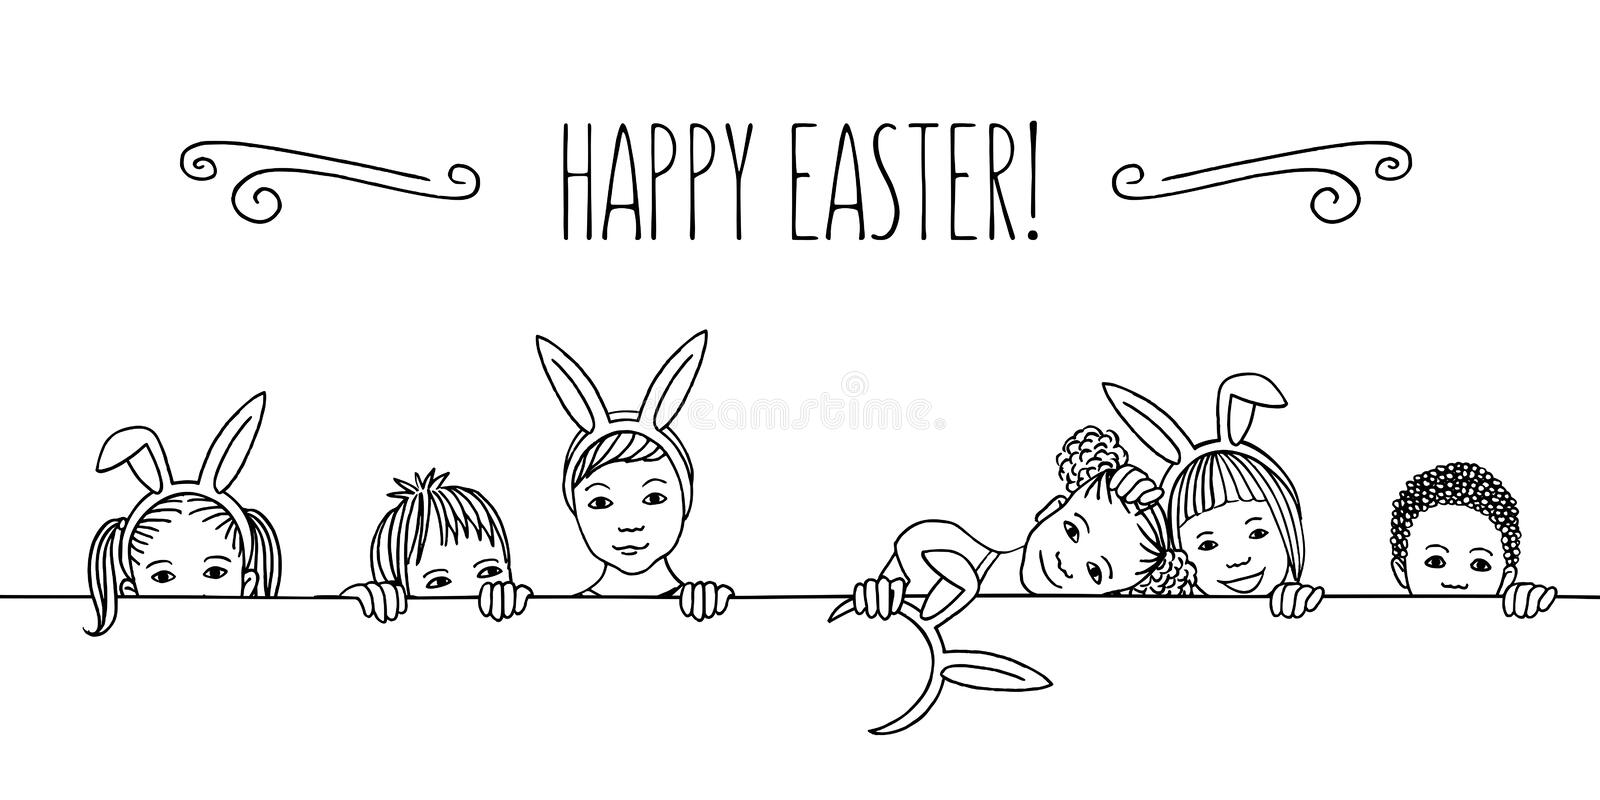 Diverse children with bunny ears - Happy Easter!. Hand drawn illustration for Easter - diverse children with bunny ears, peeking behind a horizontal line, black royalty free illustration